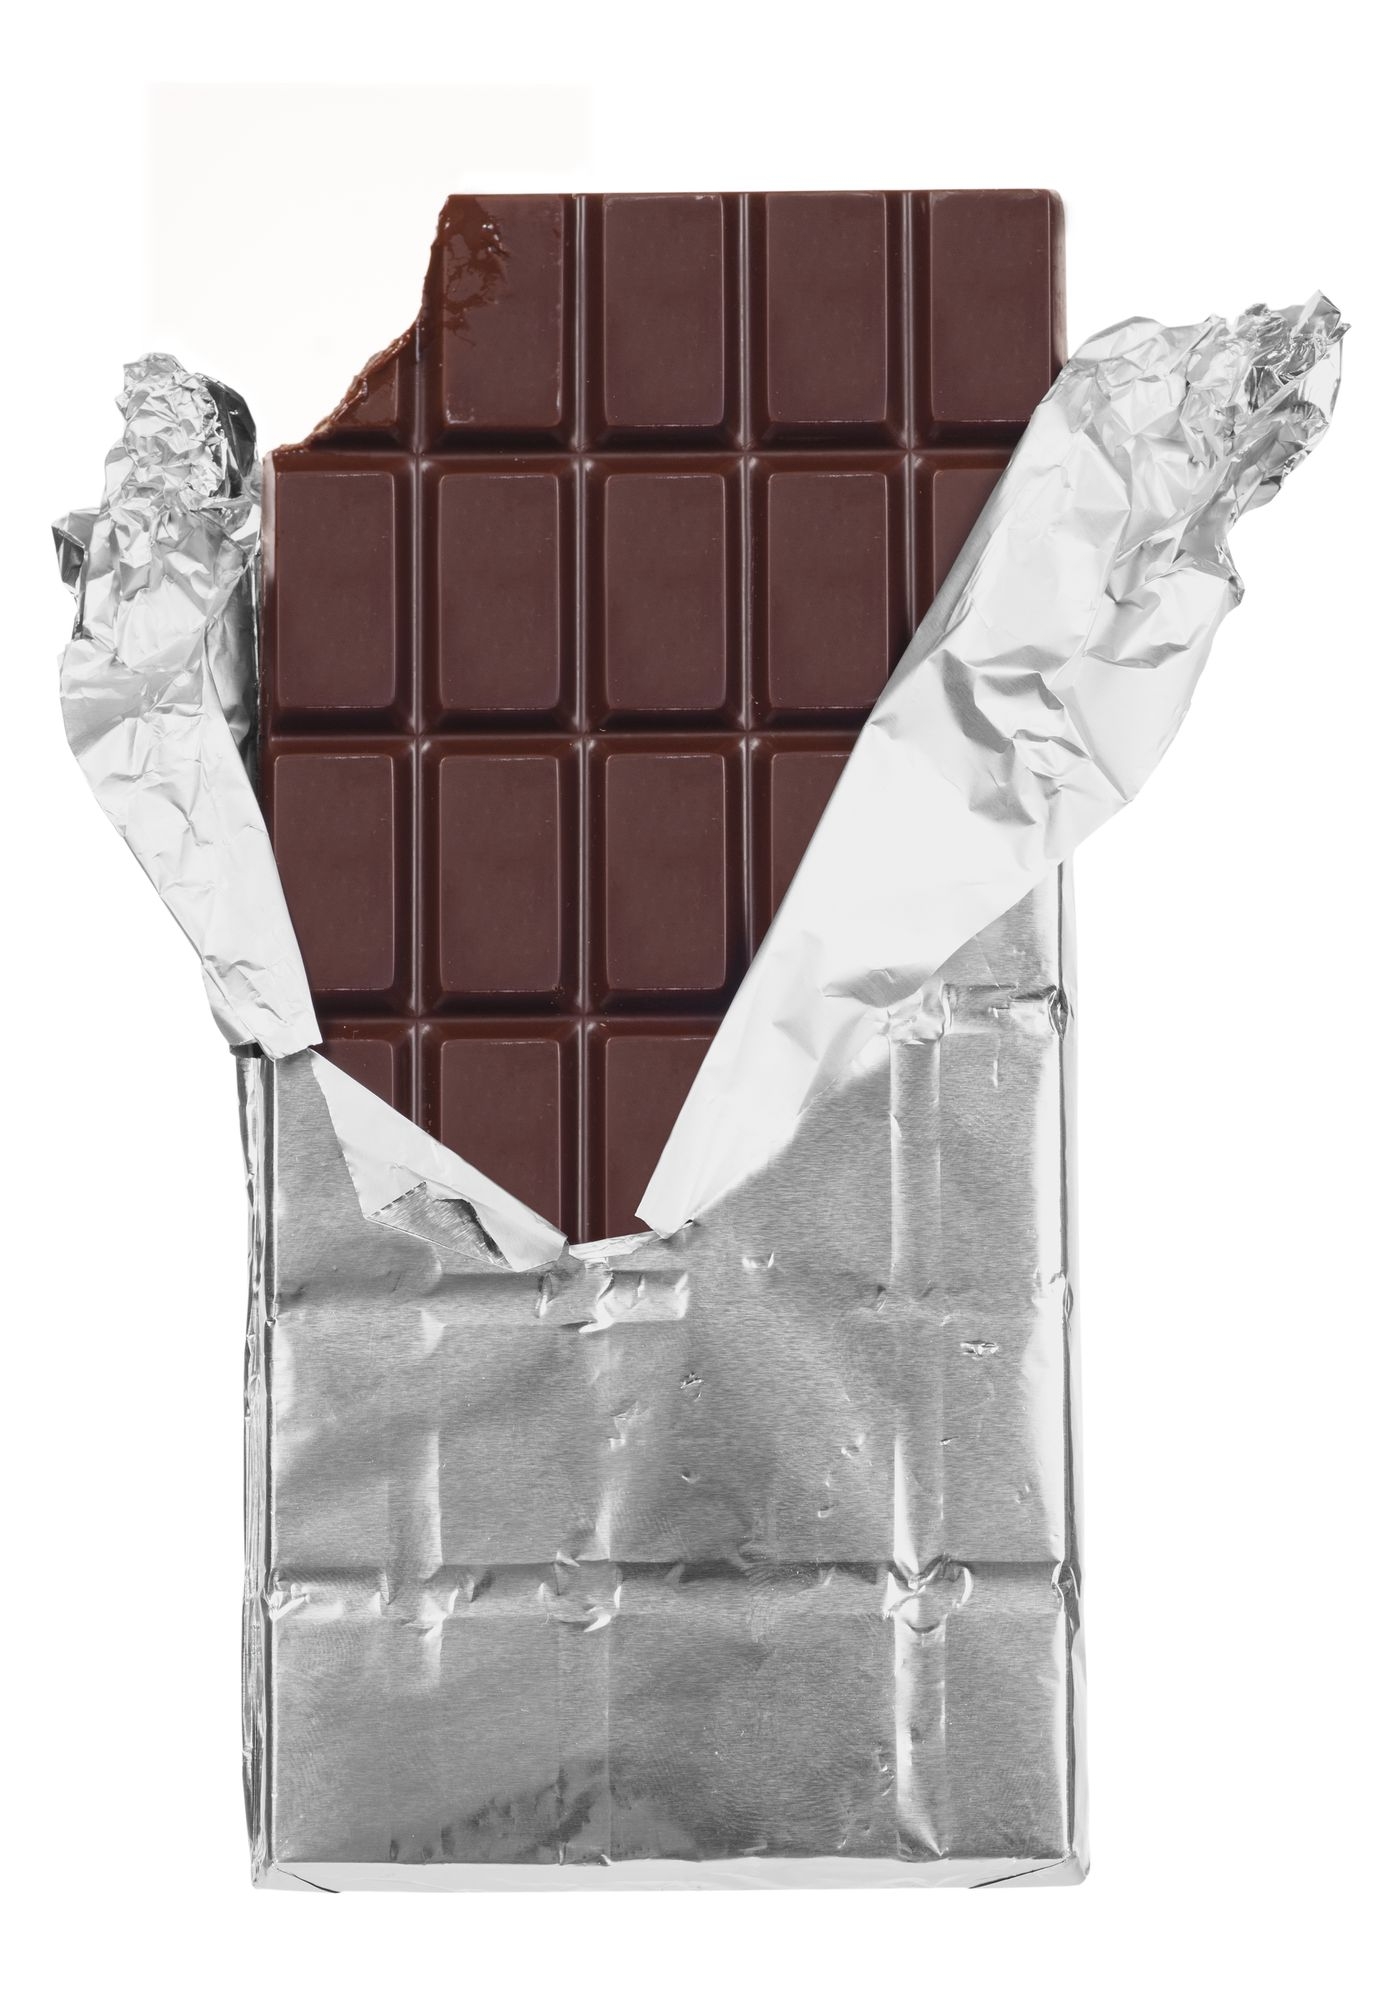 Dark Chocolate Is Now A Health Food Heres How That